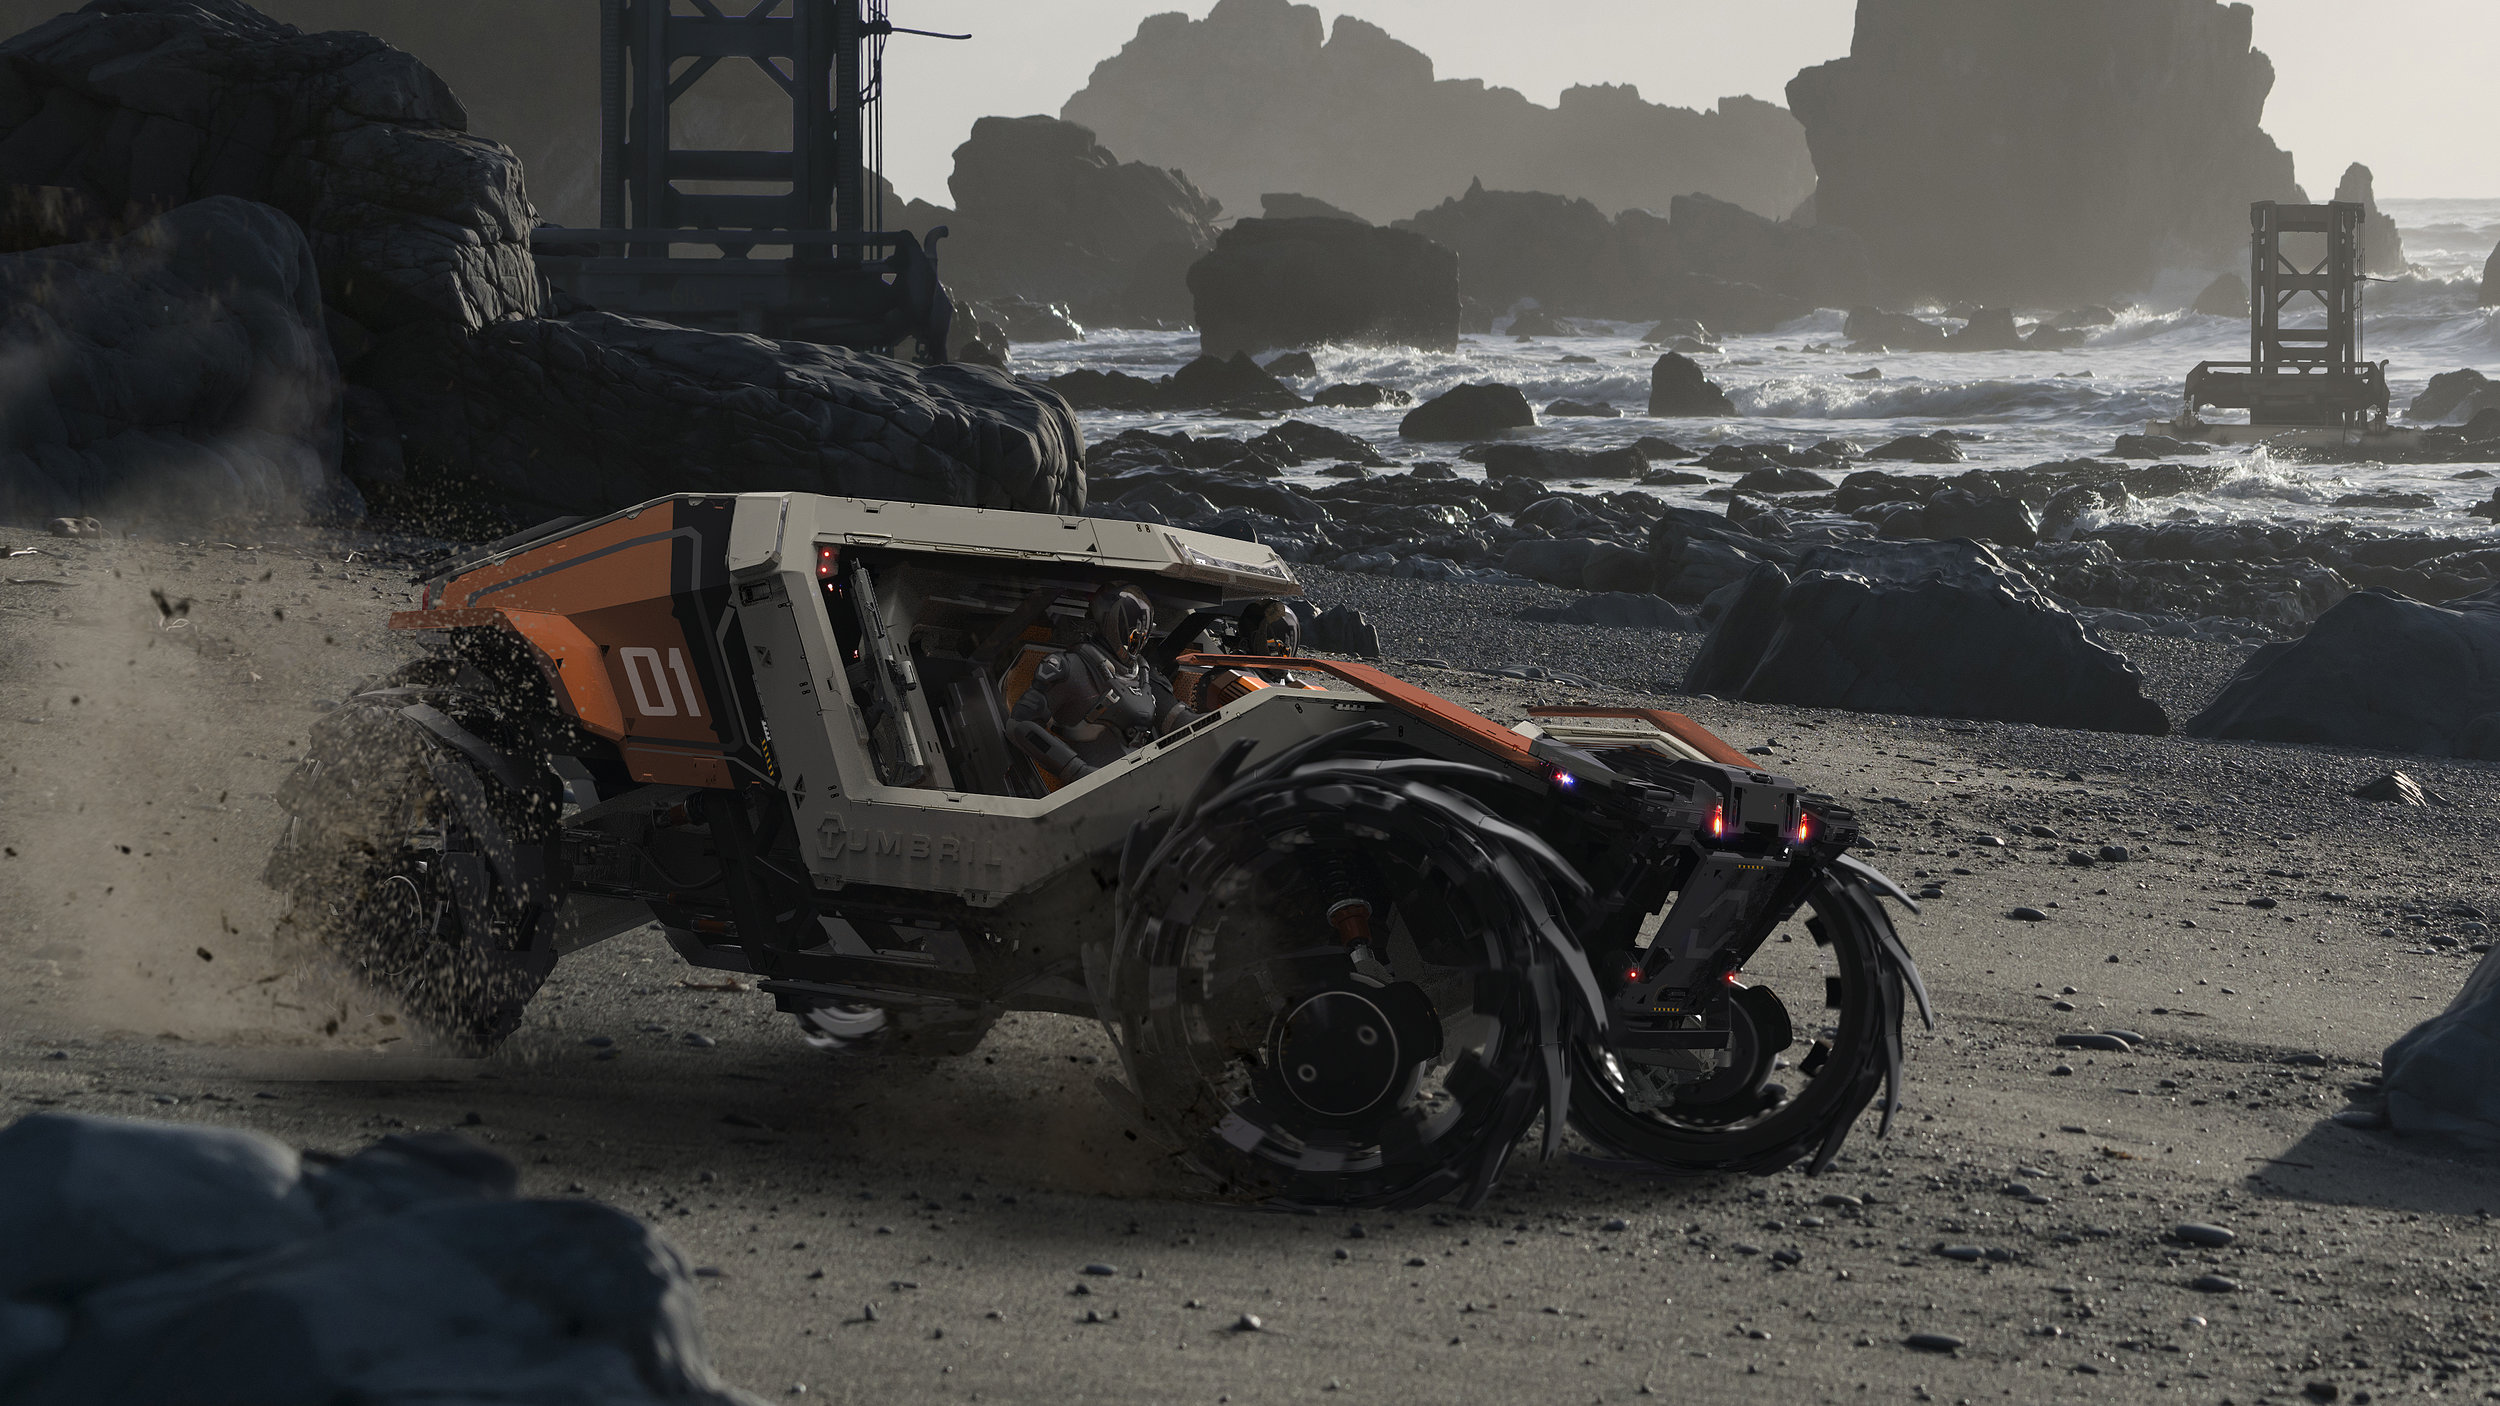 Tumbril-Buggy-Piece-05-Rocky-Beach-Sport-Fin.jpg